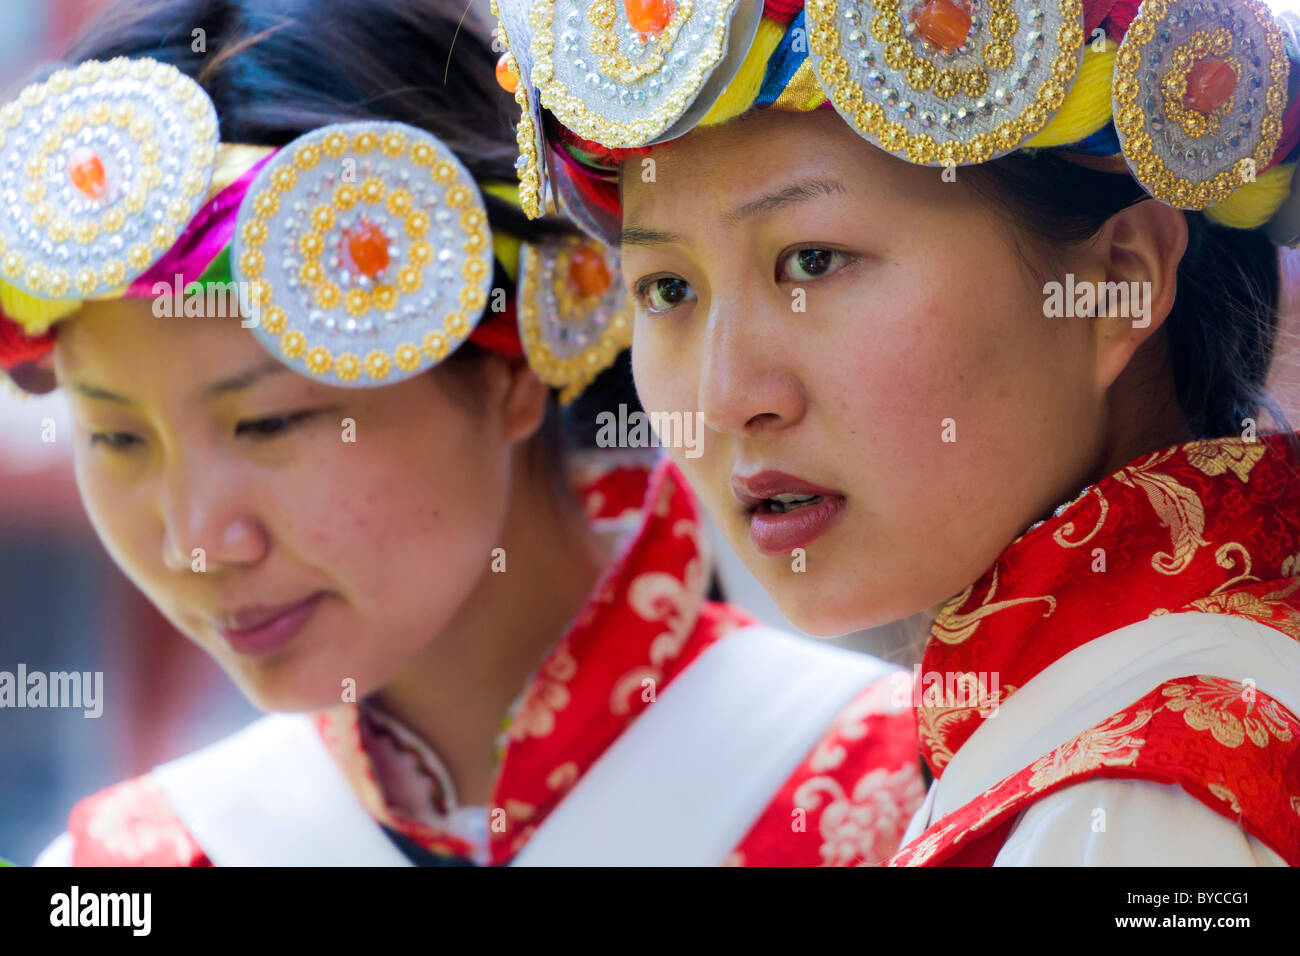 Two young Naxi women in traditional costume in Lijiang old town, Yunnan Province, China. JMH4769 - Stock Image